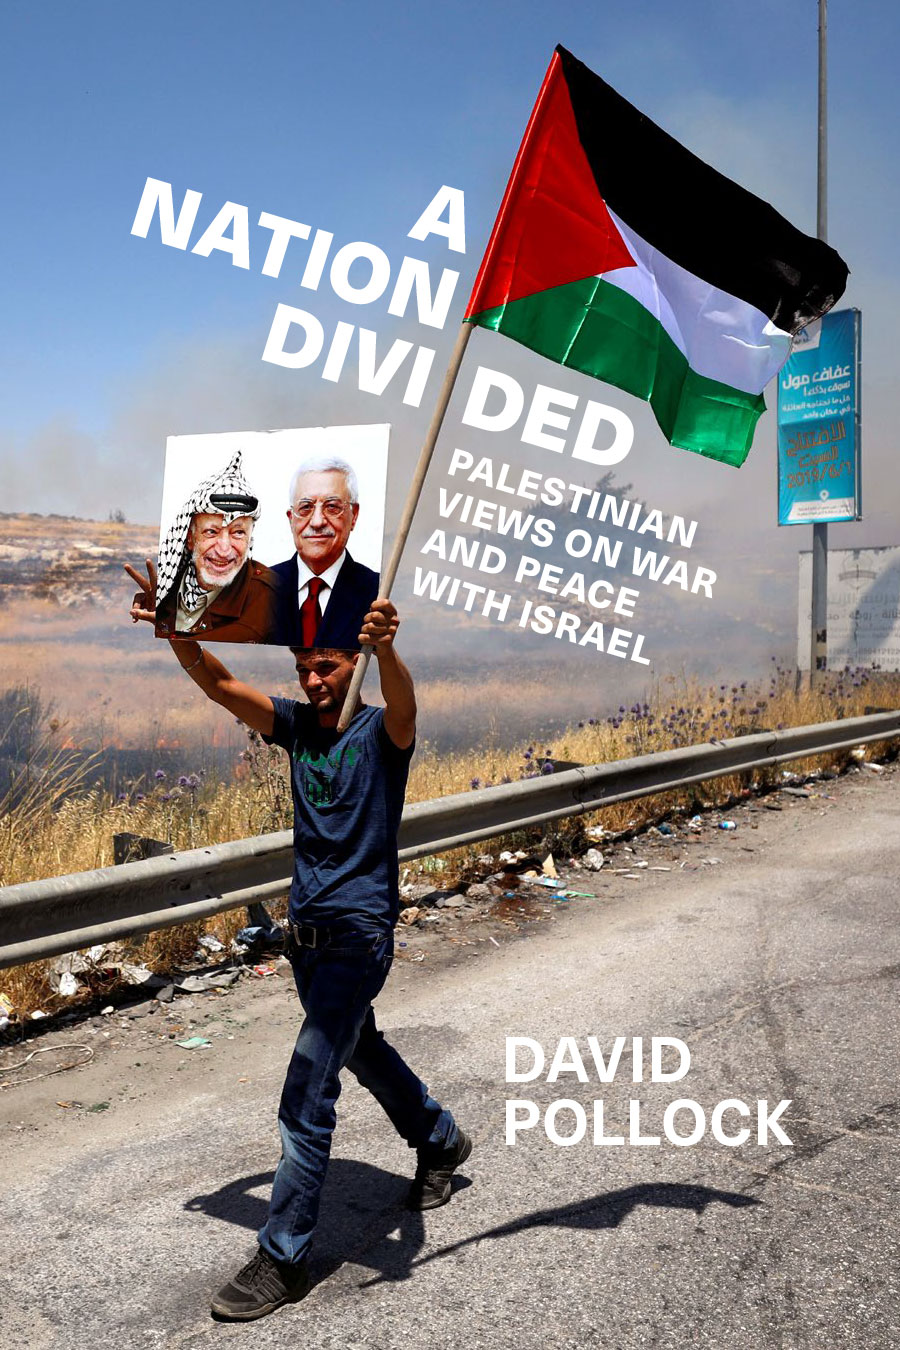 Book cover showing a man holding a Palestinian flag and a photo